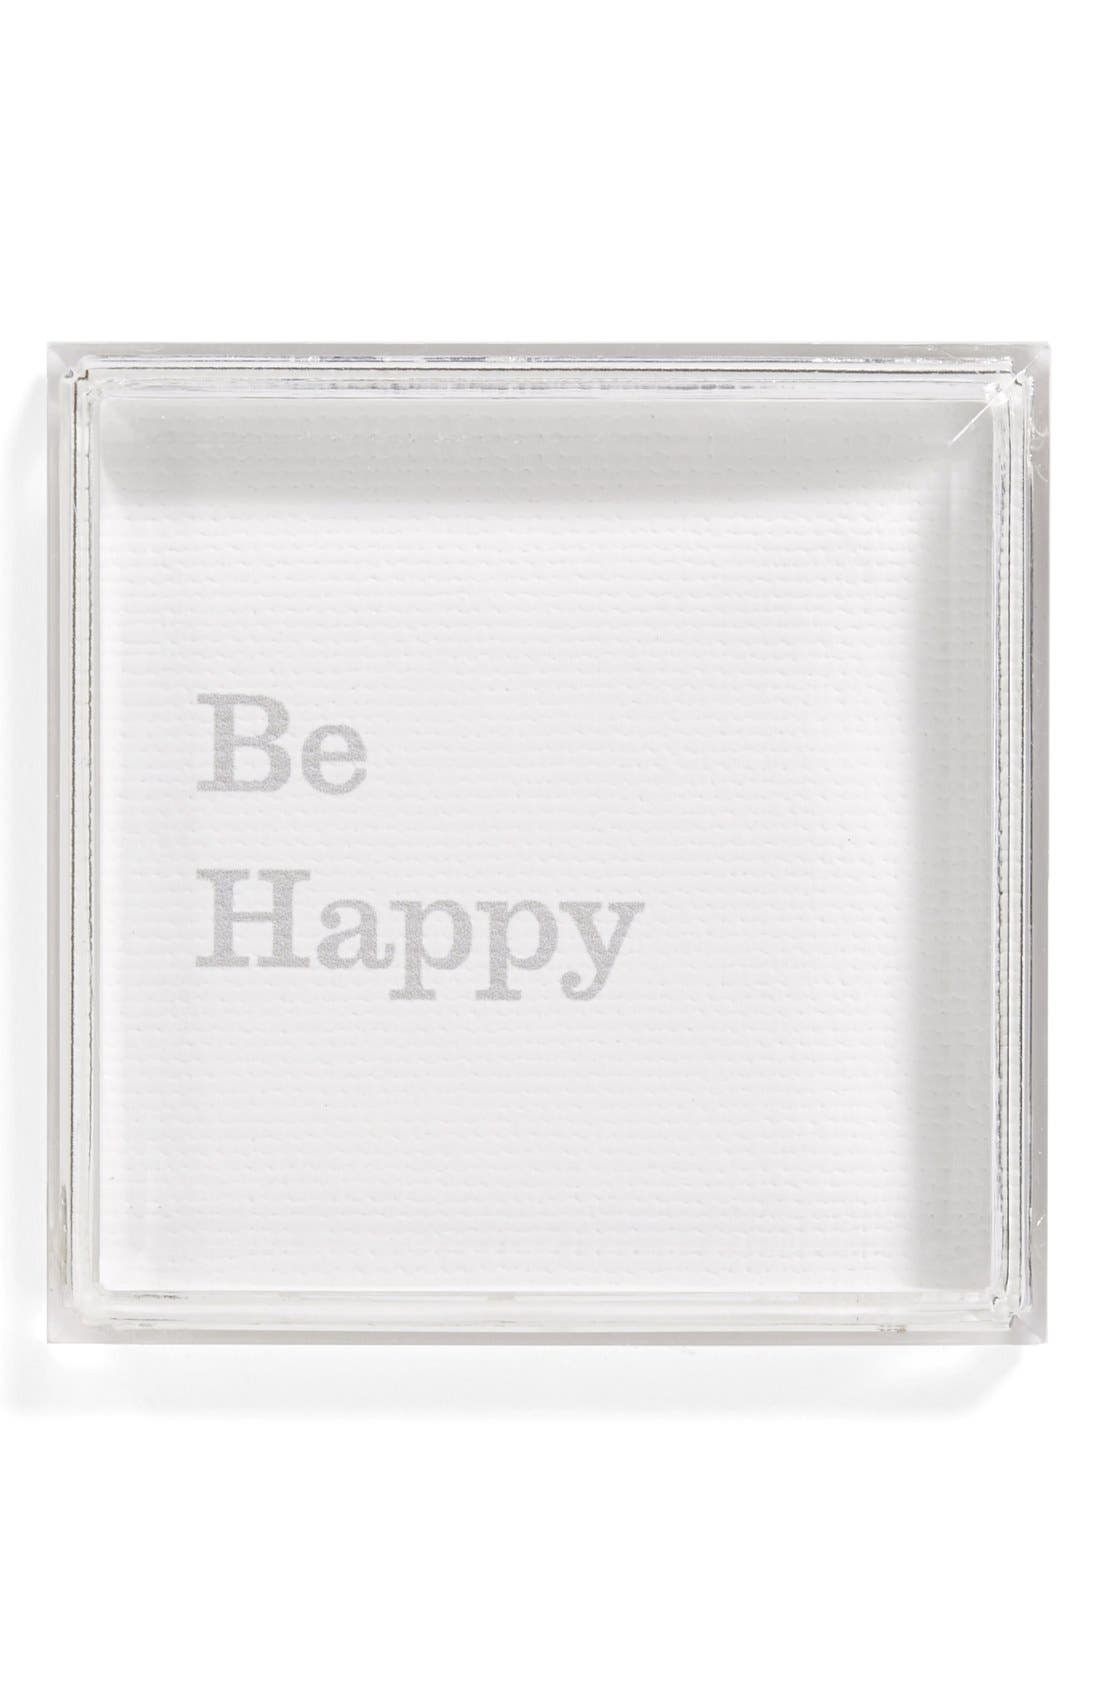 Alternate Image 1 Selected - Petal Lane 'Be Happy' Magnet